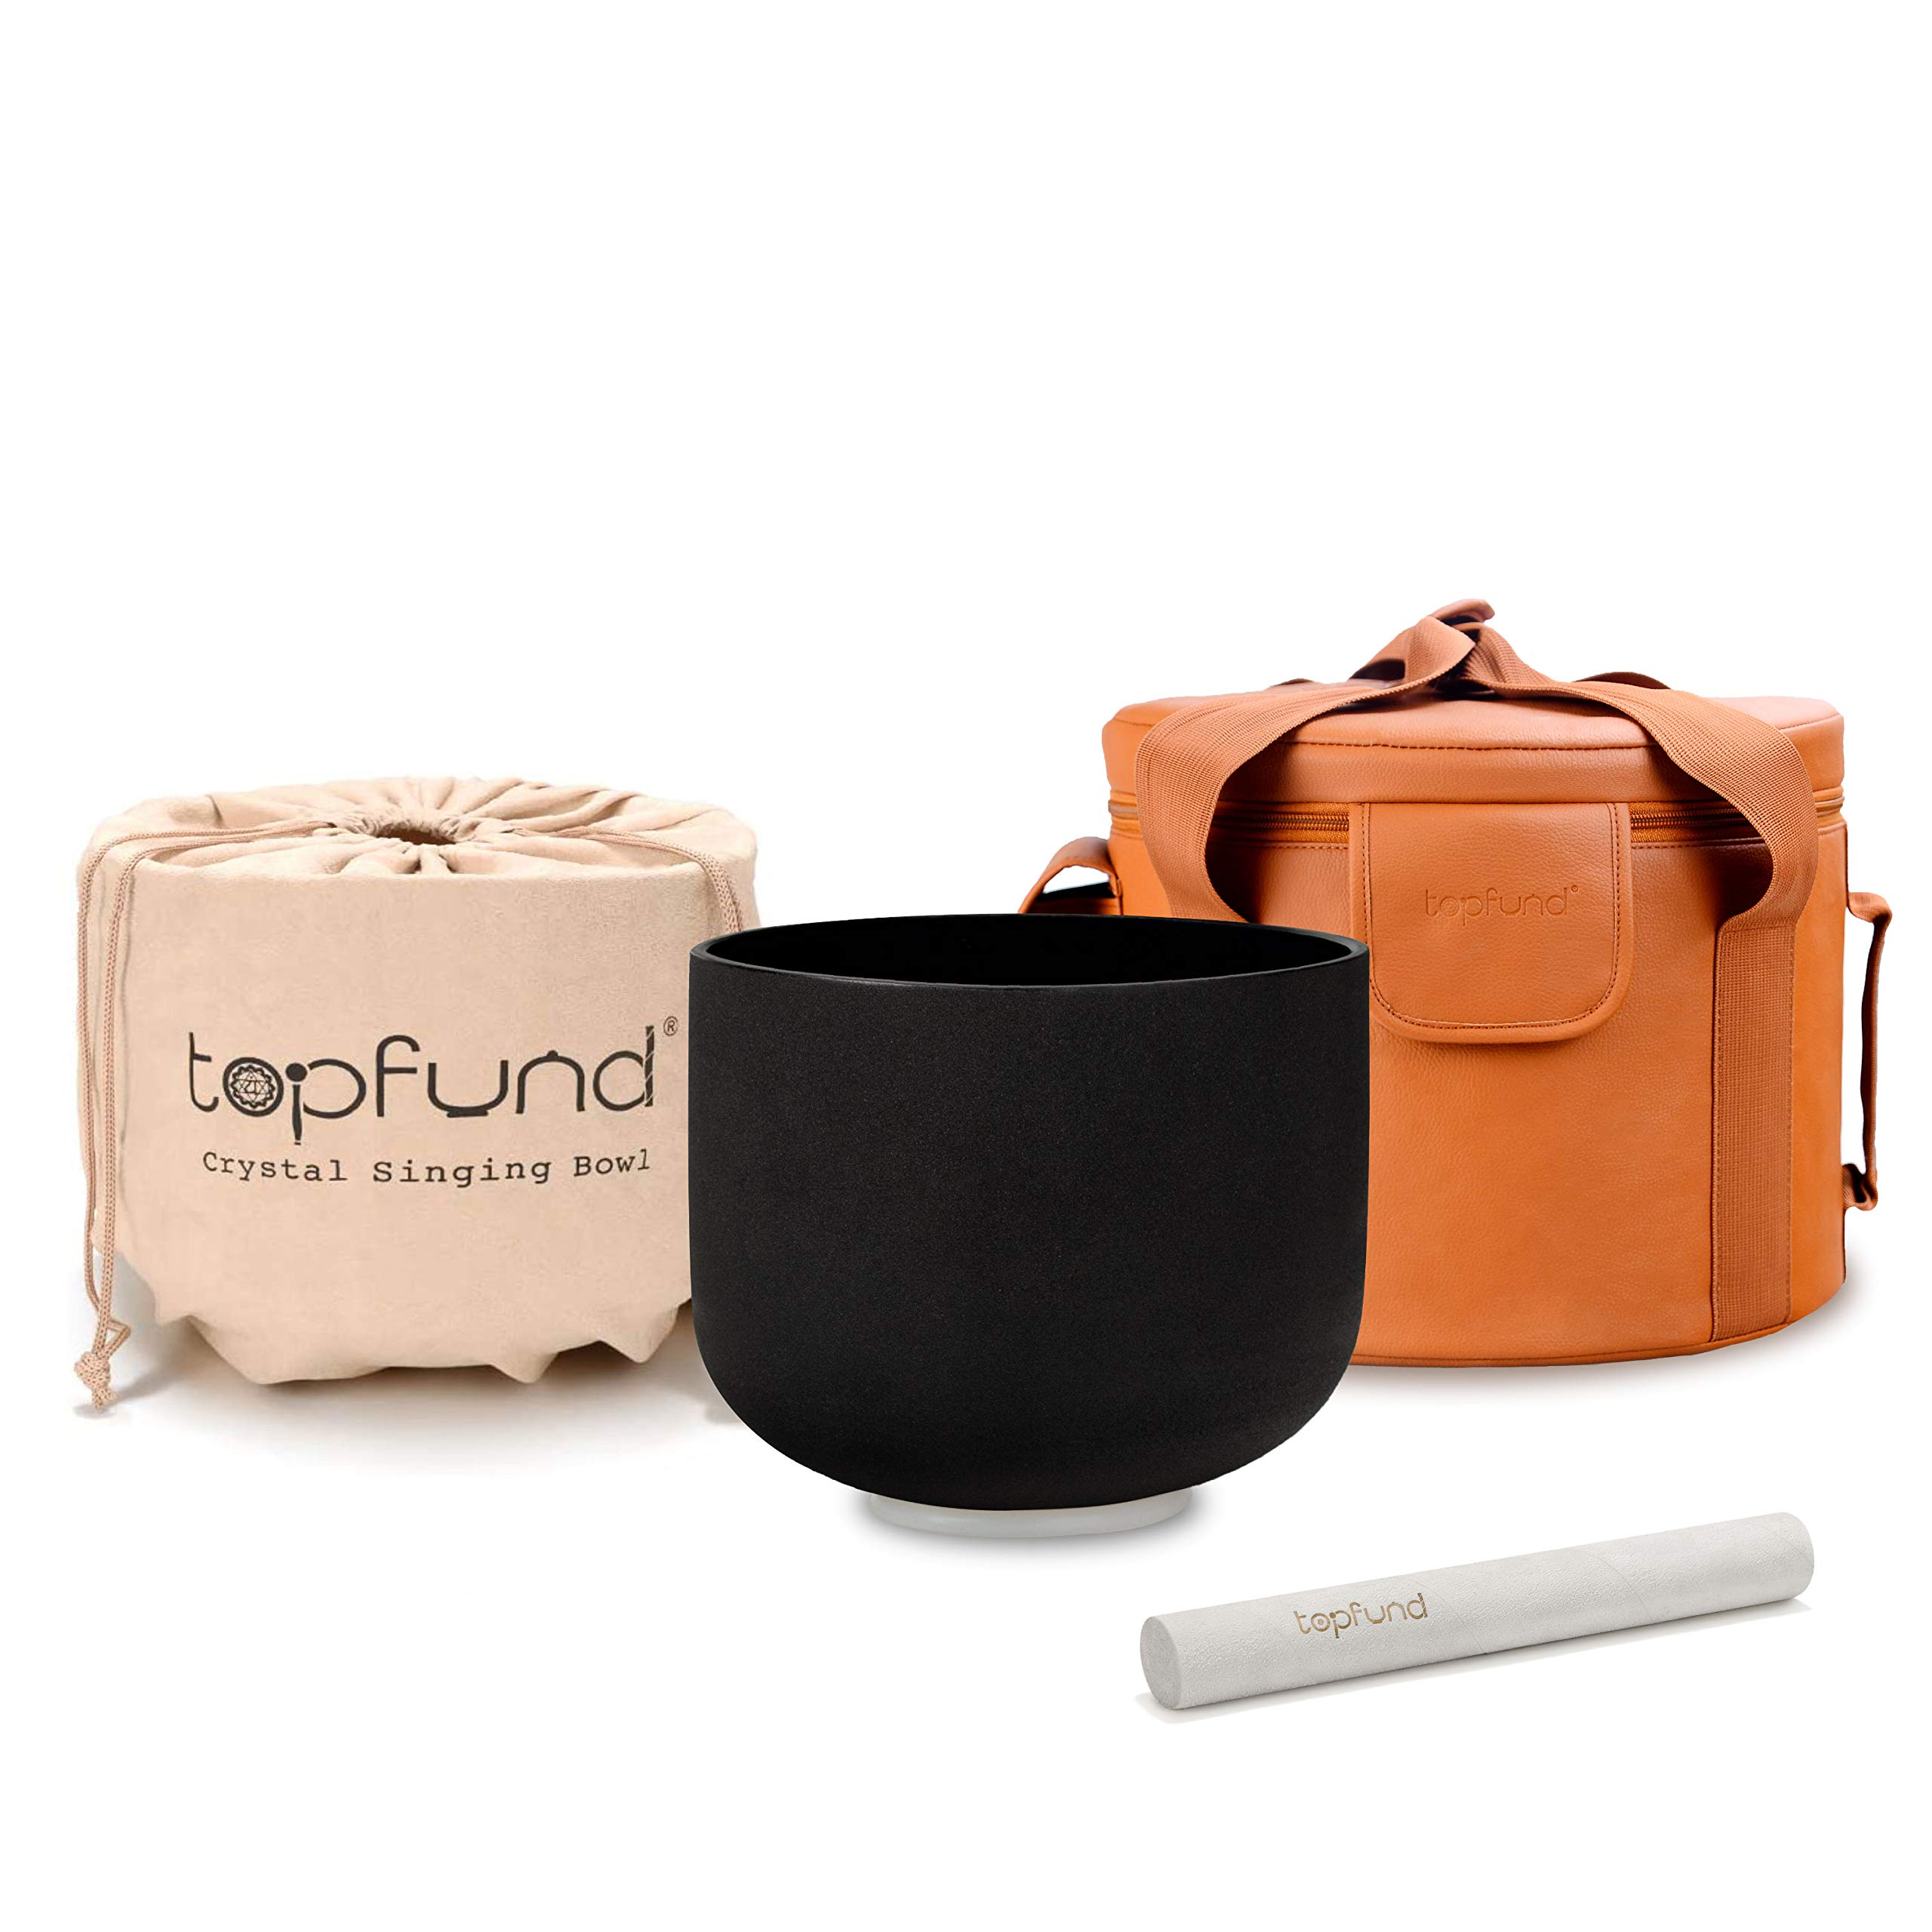 TOPFUND Black G Note Crystal Singing Bowl Throat Chakra 10 inch with Heavy Duty Artificial Leather Carrying Case and Singing Bowl Suede Striker